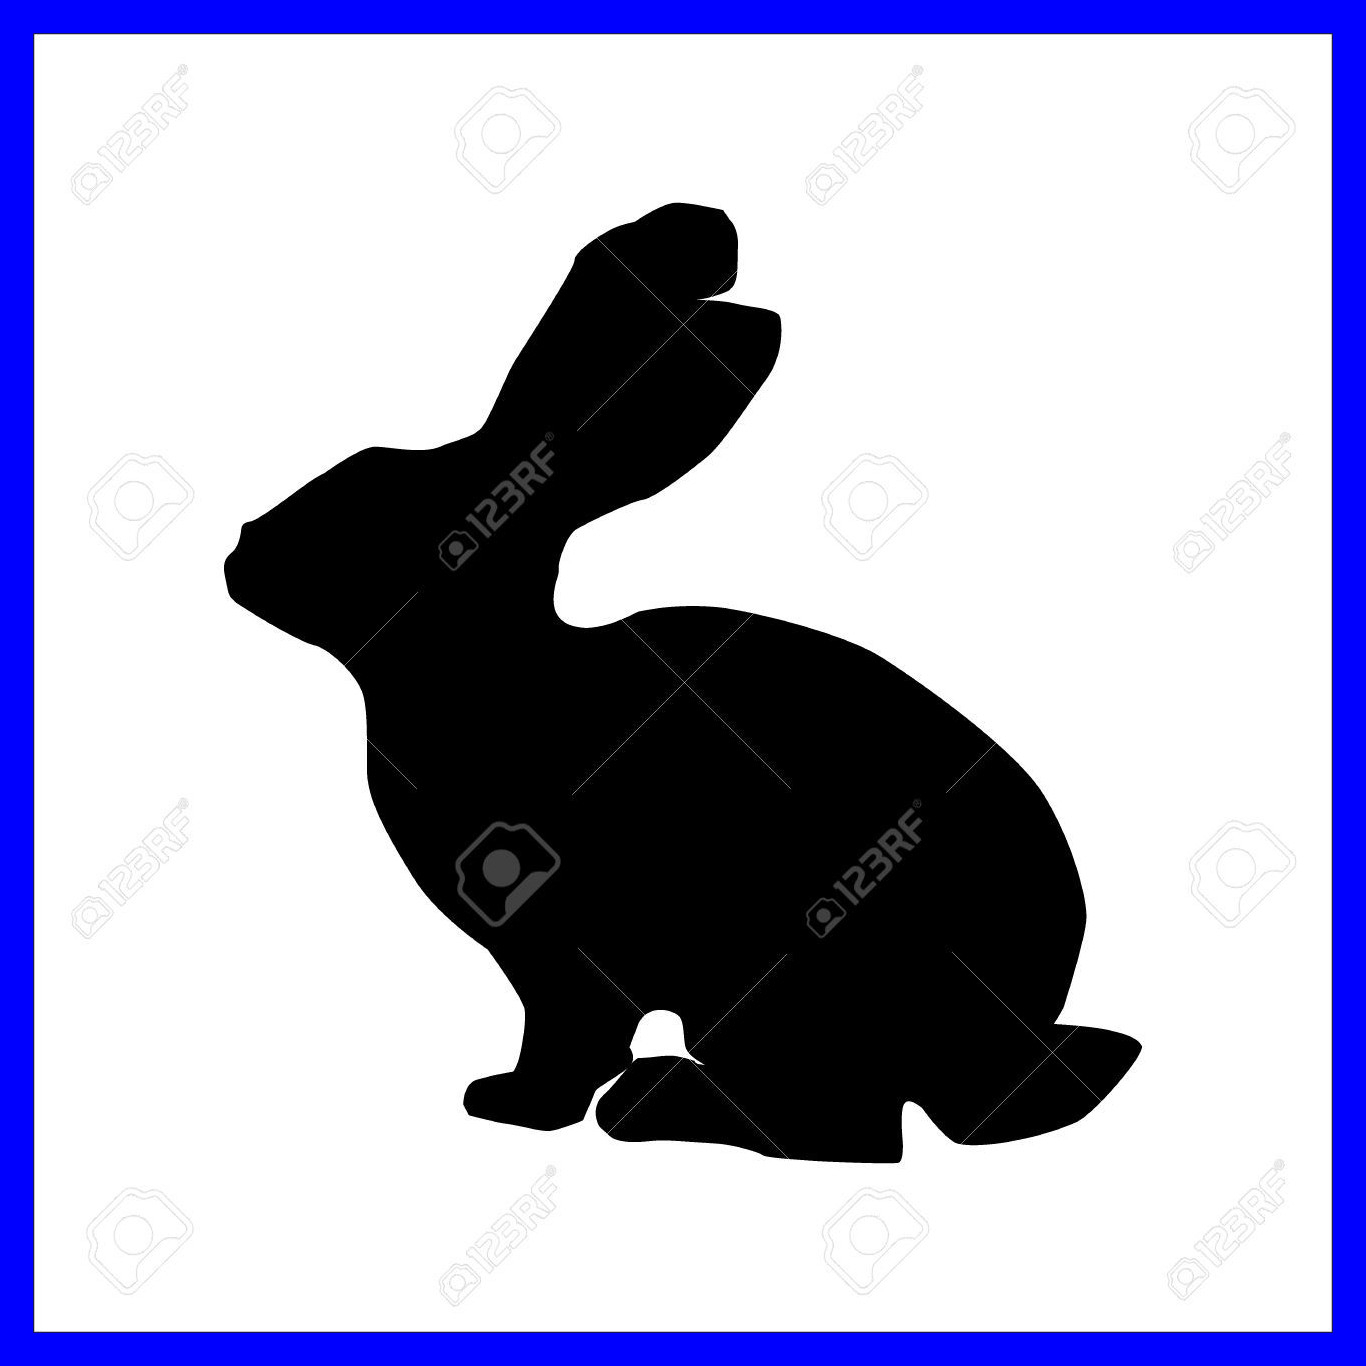 1366x1366 Awesome Easter Bunny Pic For Cartoon Of Rabbit Popular And Styles